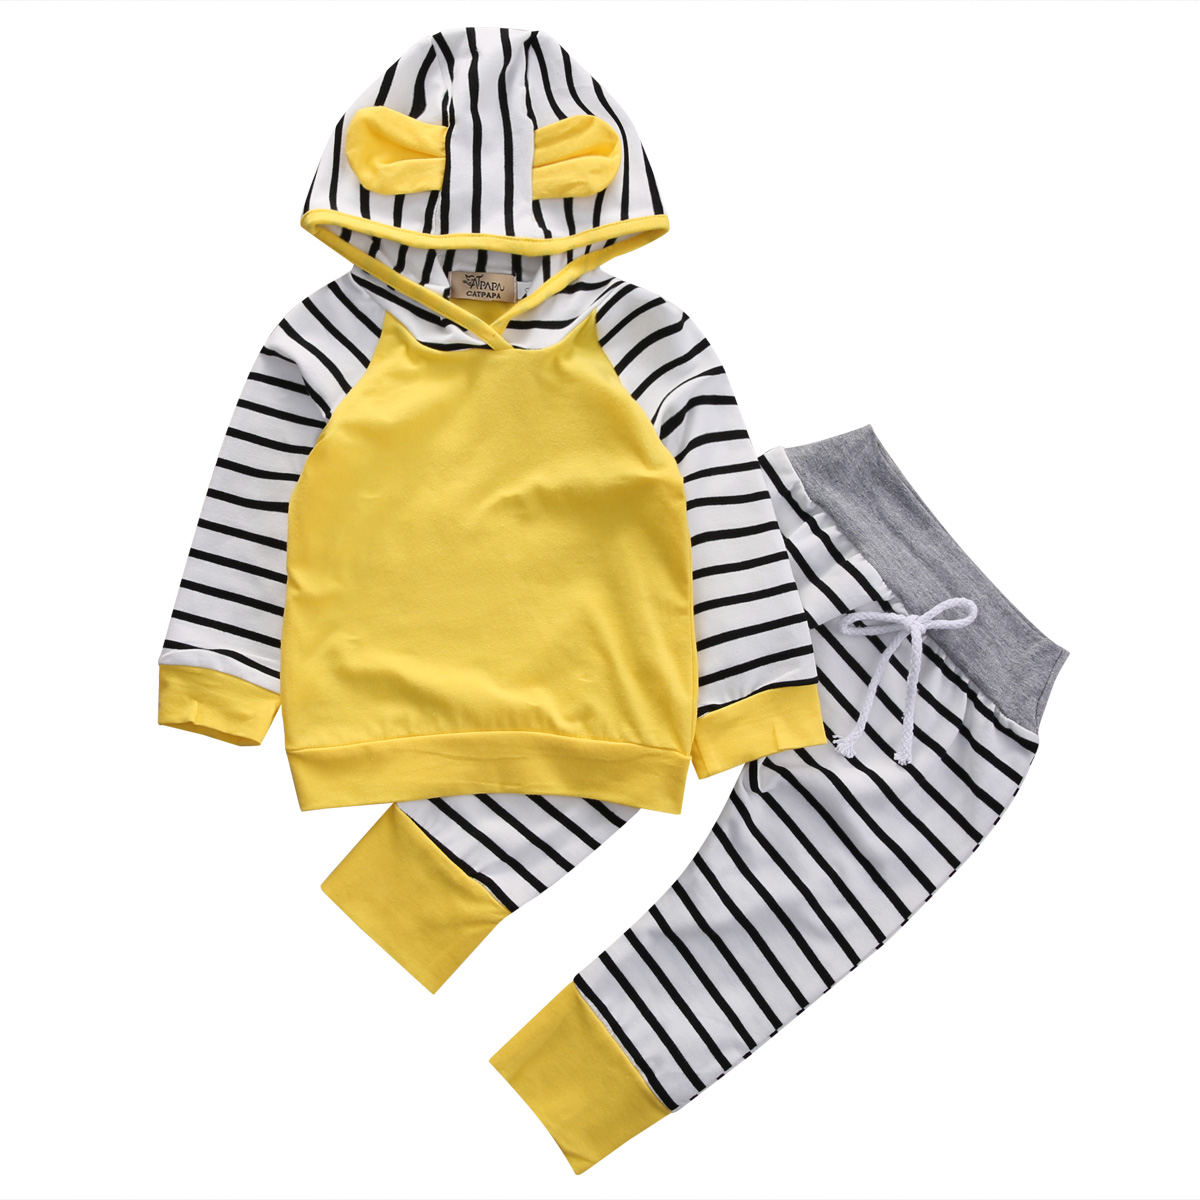 Cute 2PCS Toddler Kids Clothes Newborn Baby Boys Girl 3D Hooded Tops Sweatshirt and Striped Pants Outfit Clothing Set 0-3Y